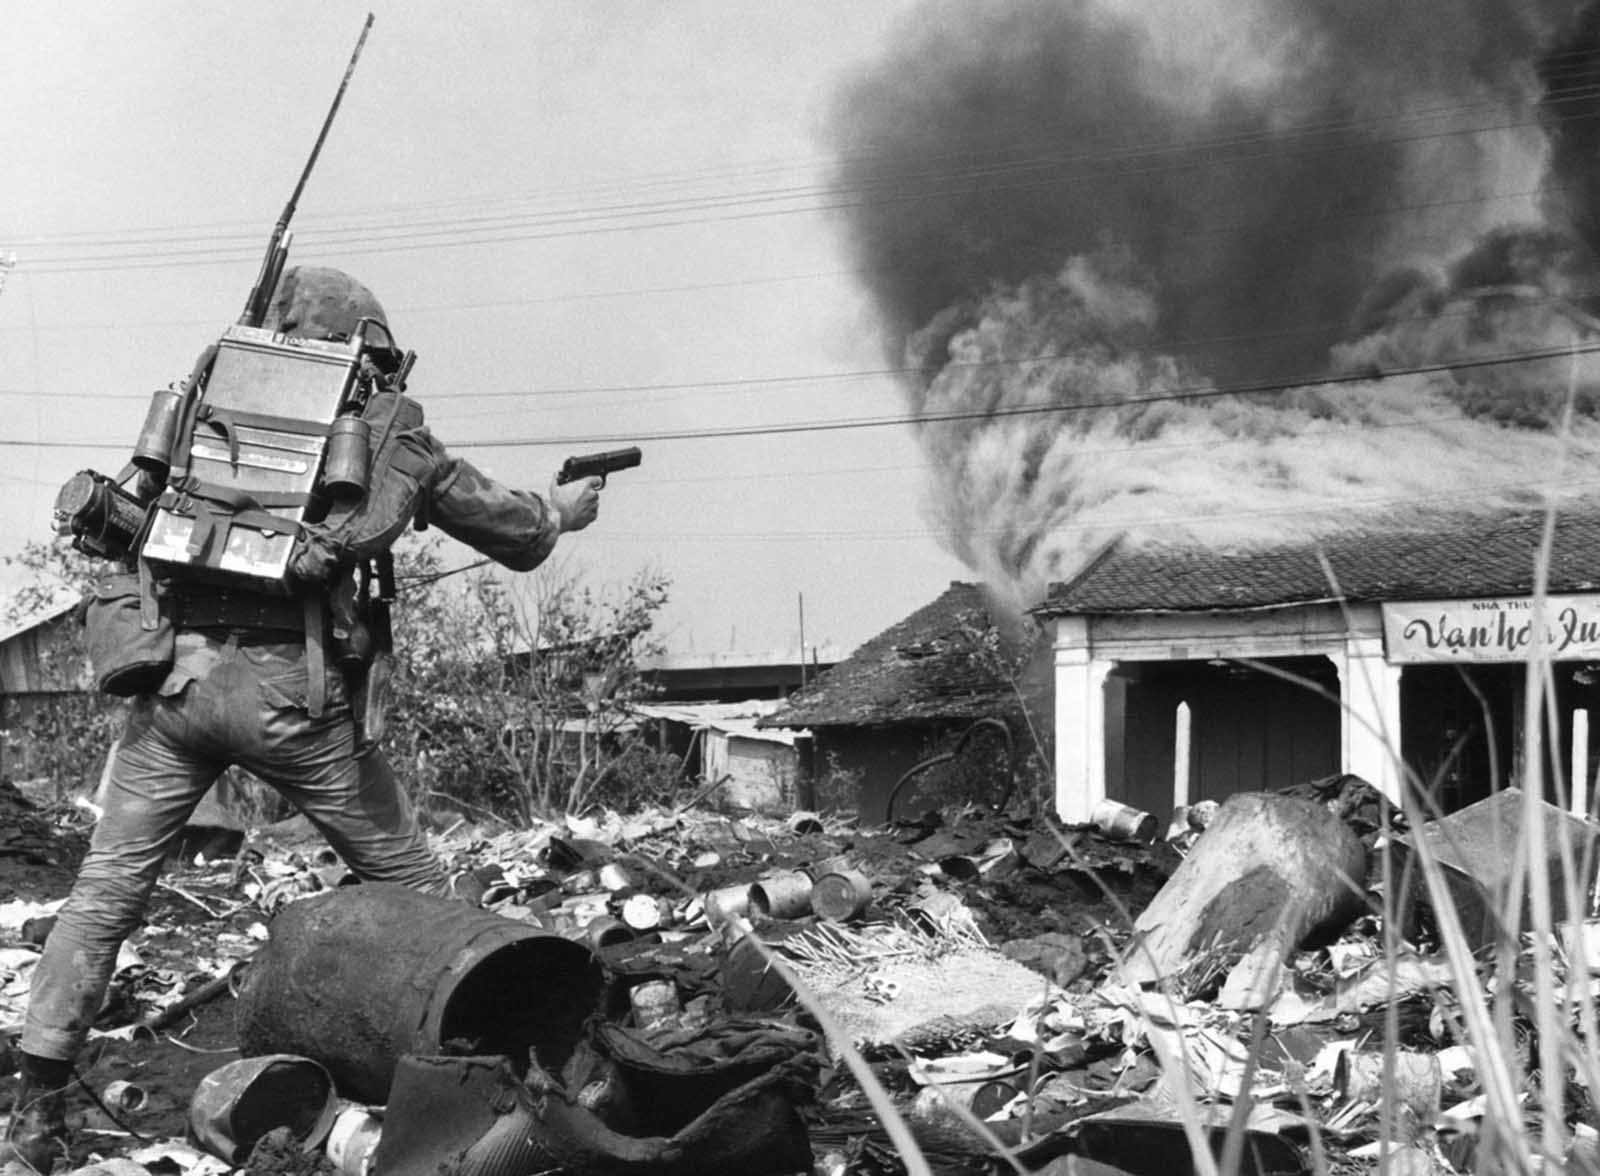 South Vietnamese combat police advance toward a burning building in northeastern Saigon on February 19, 1968, as they battle Viet Cong forces who had occupied several city blocks in the area.